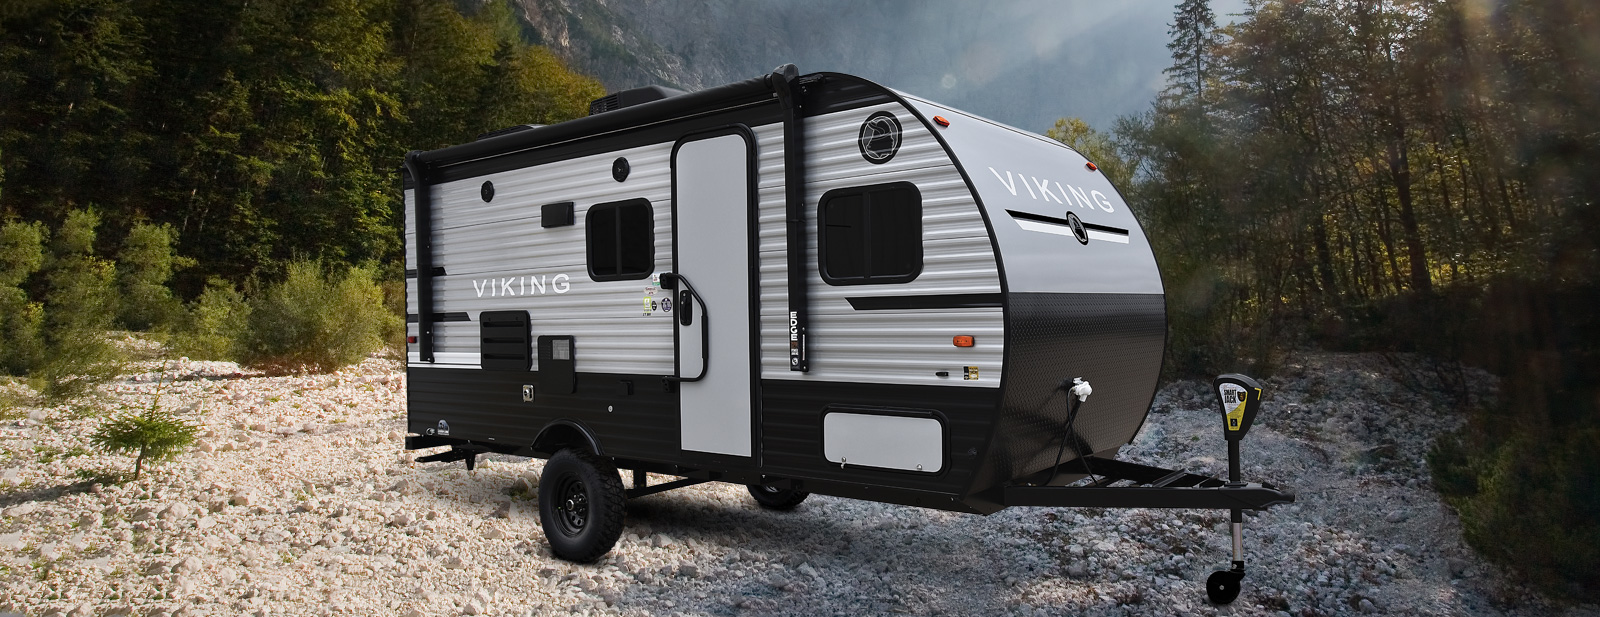 Viking Ultra Lite Travel Trailers By Coachmen Rv